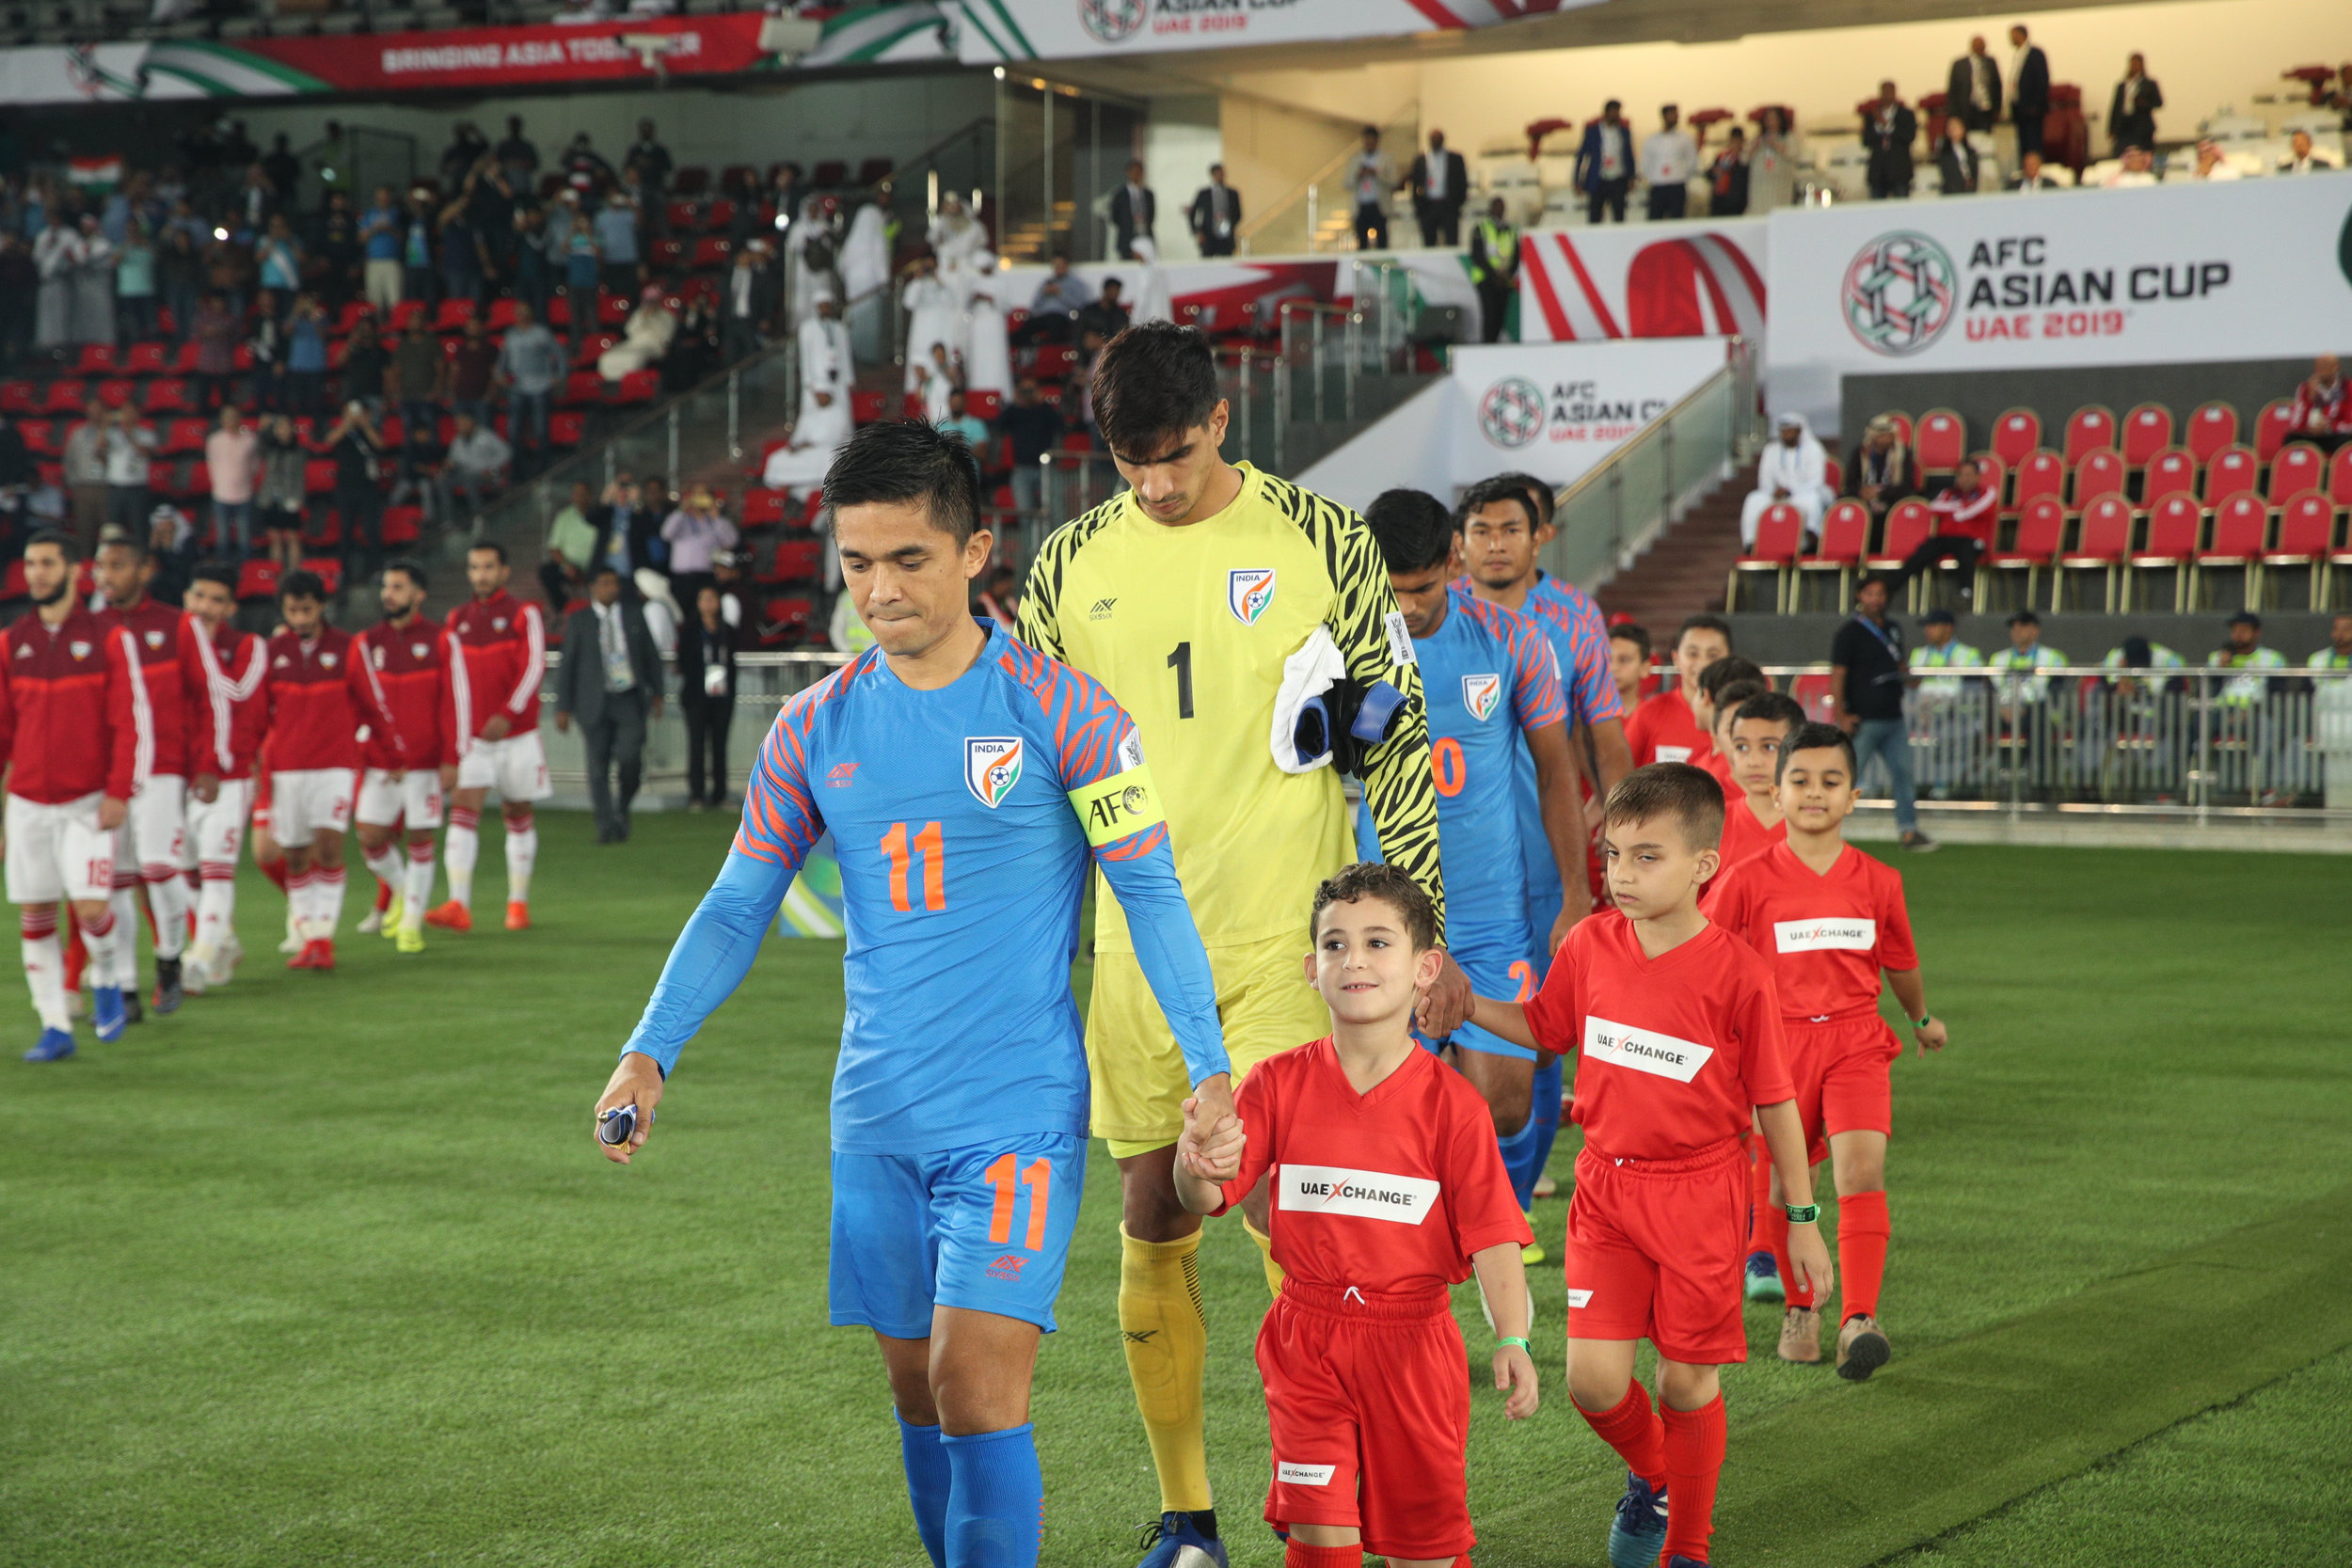 Sunil Chhetri, will he lead India to the round of 16? (Asian Football Confederation (AFC))